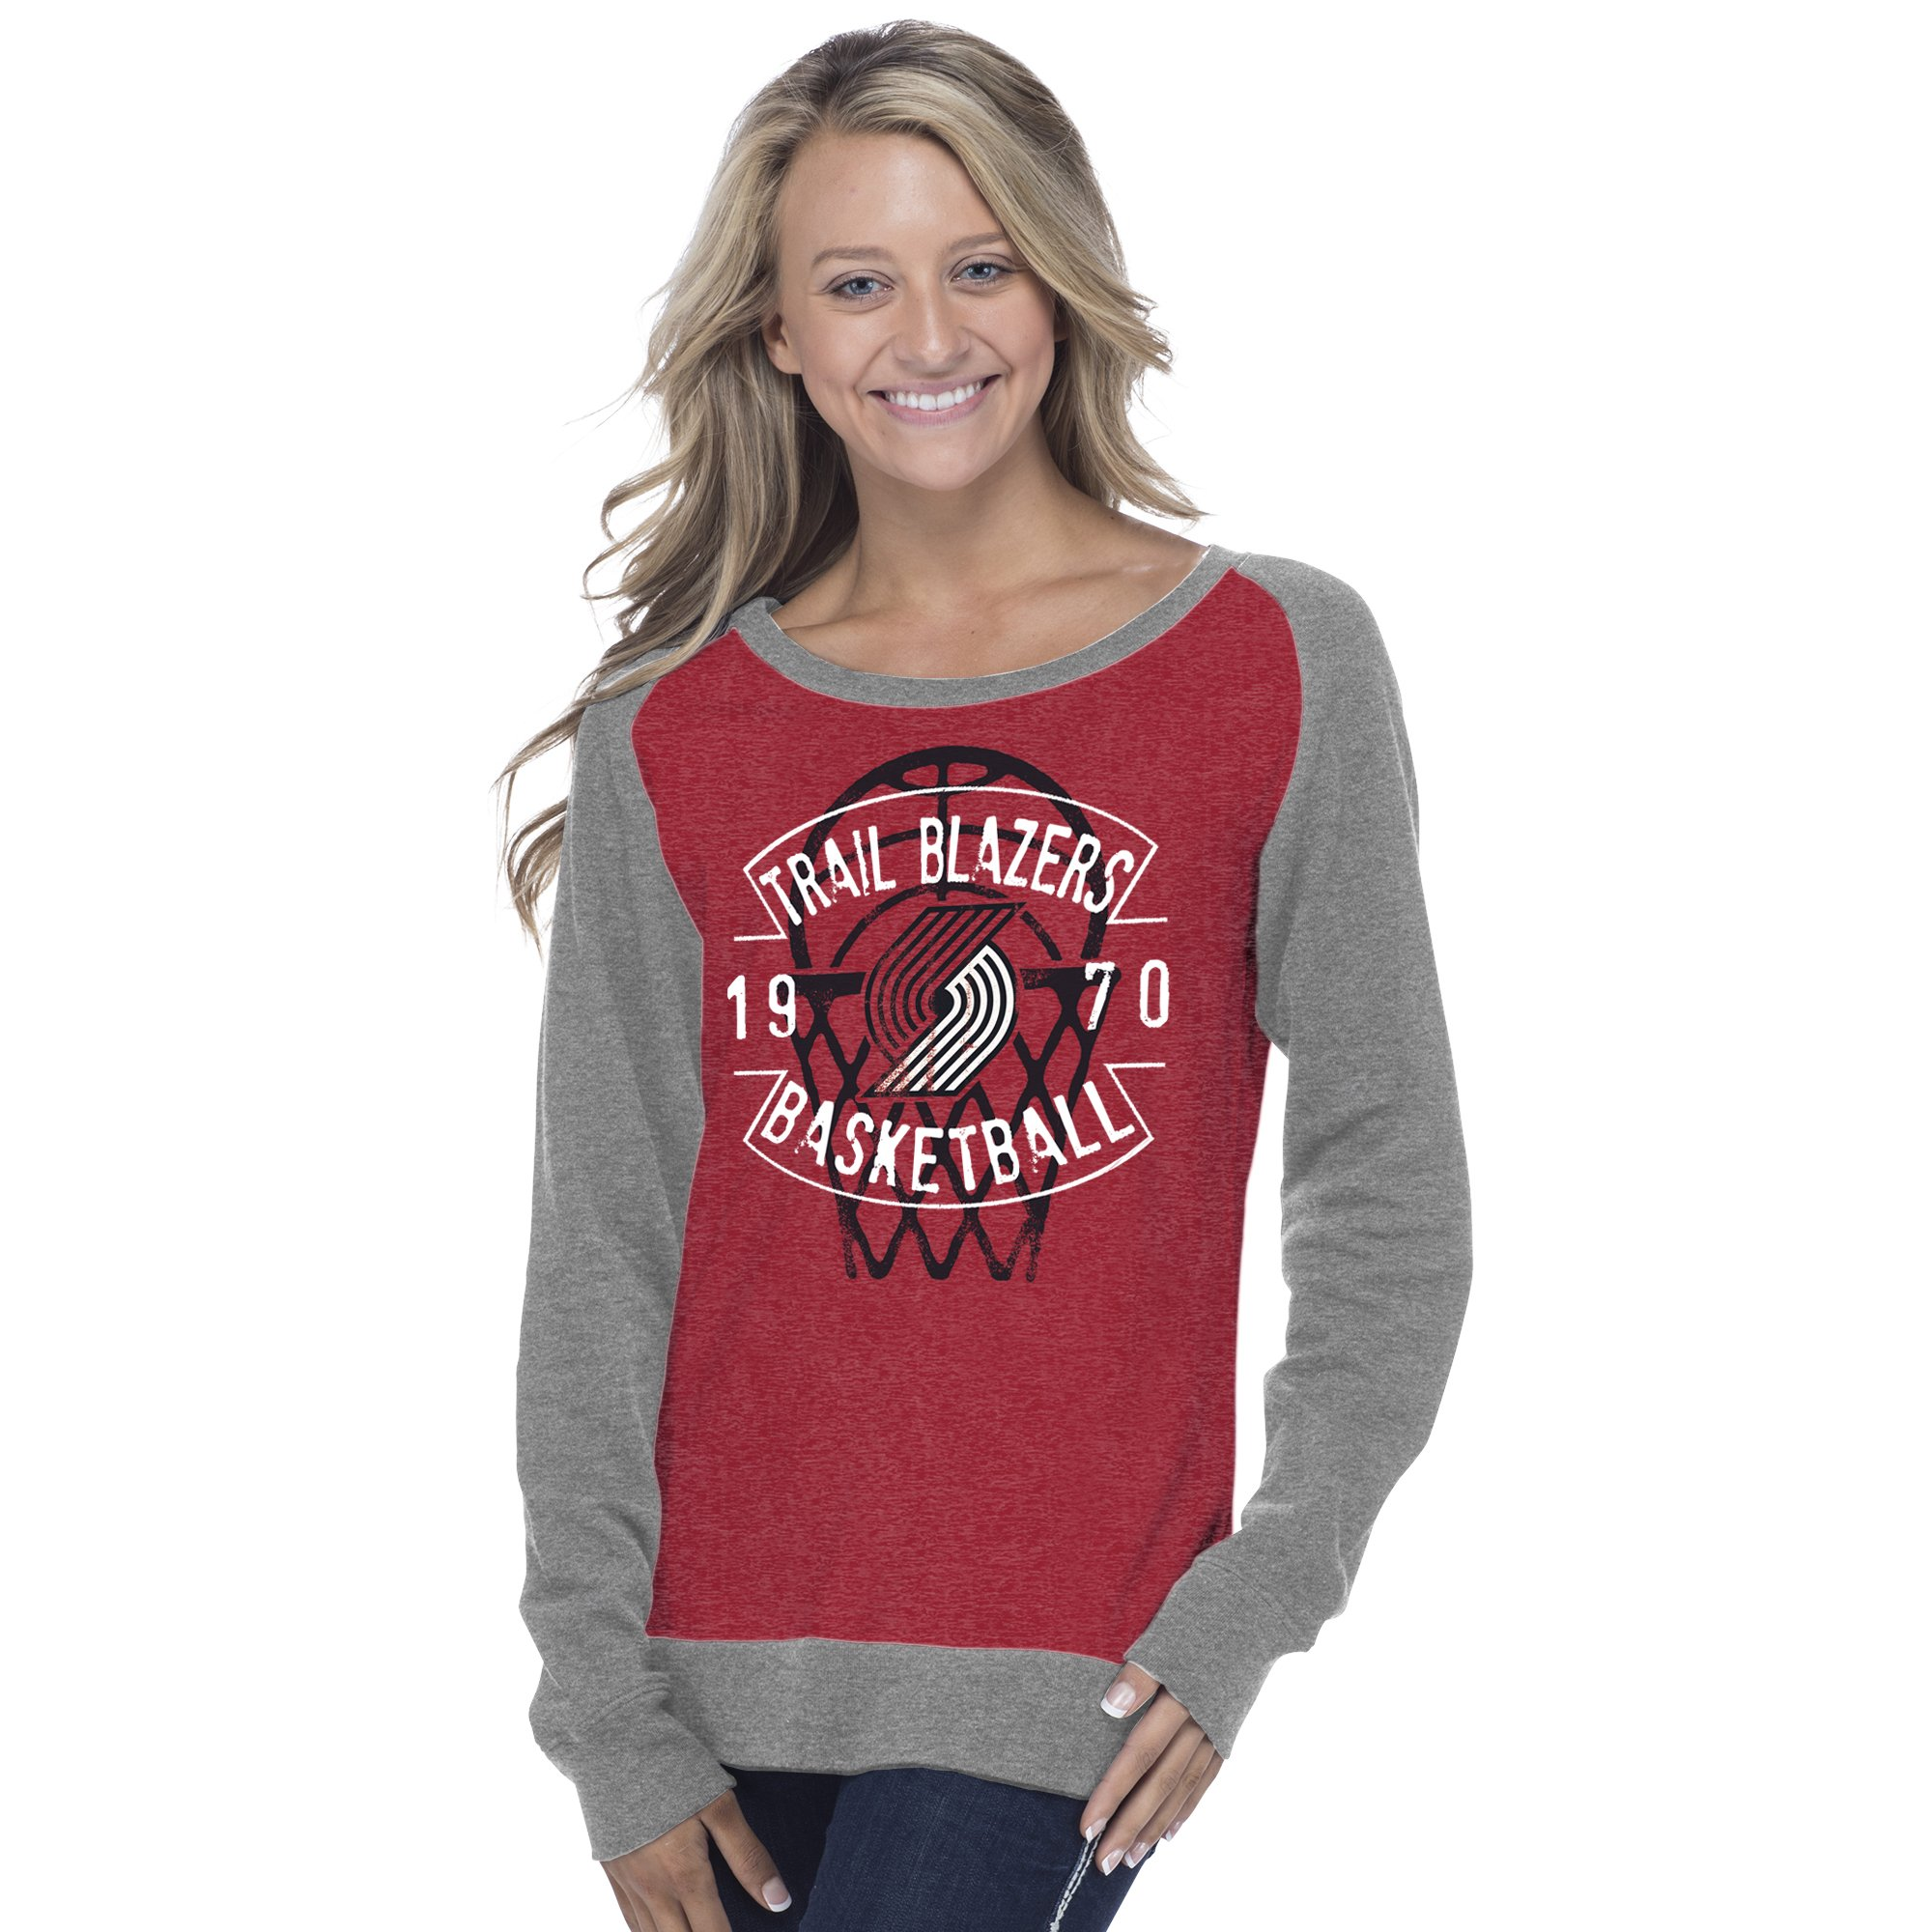 Creative Apparel Concepts NBA Portland Trail Blazers Adult Women NBA Women's Super Soft Long sleeve Pullover Sweatshirt, X-Large, Heather Red/Medium Grey